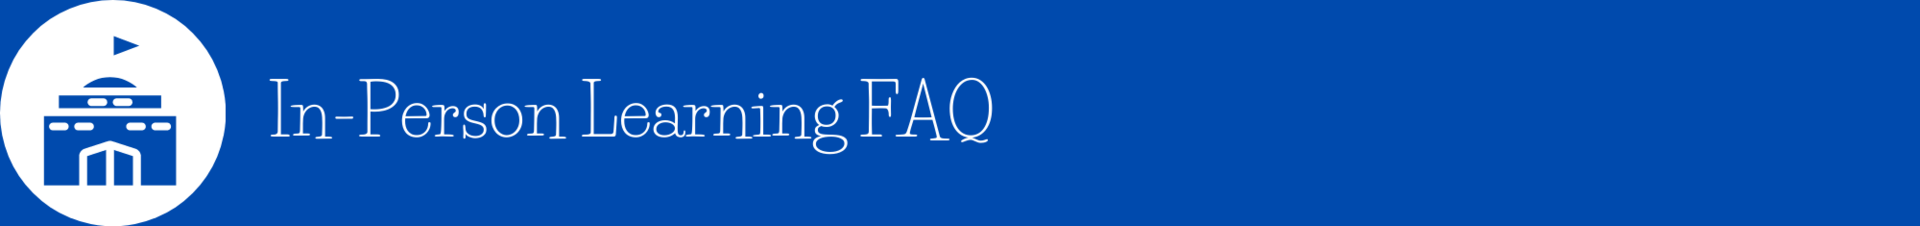 in person learning faq heading